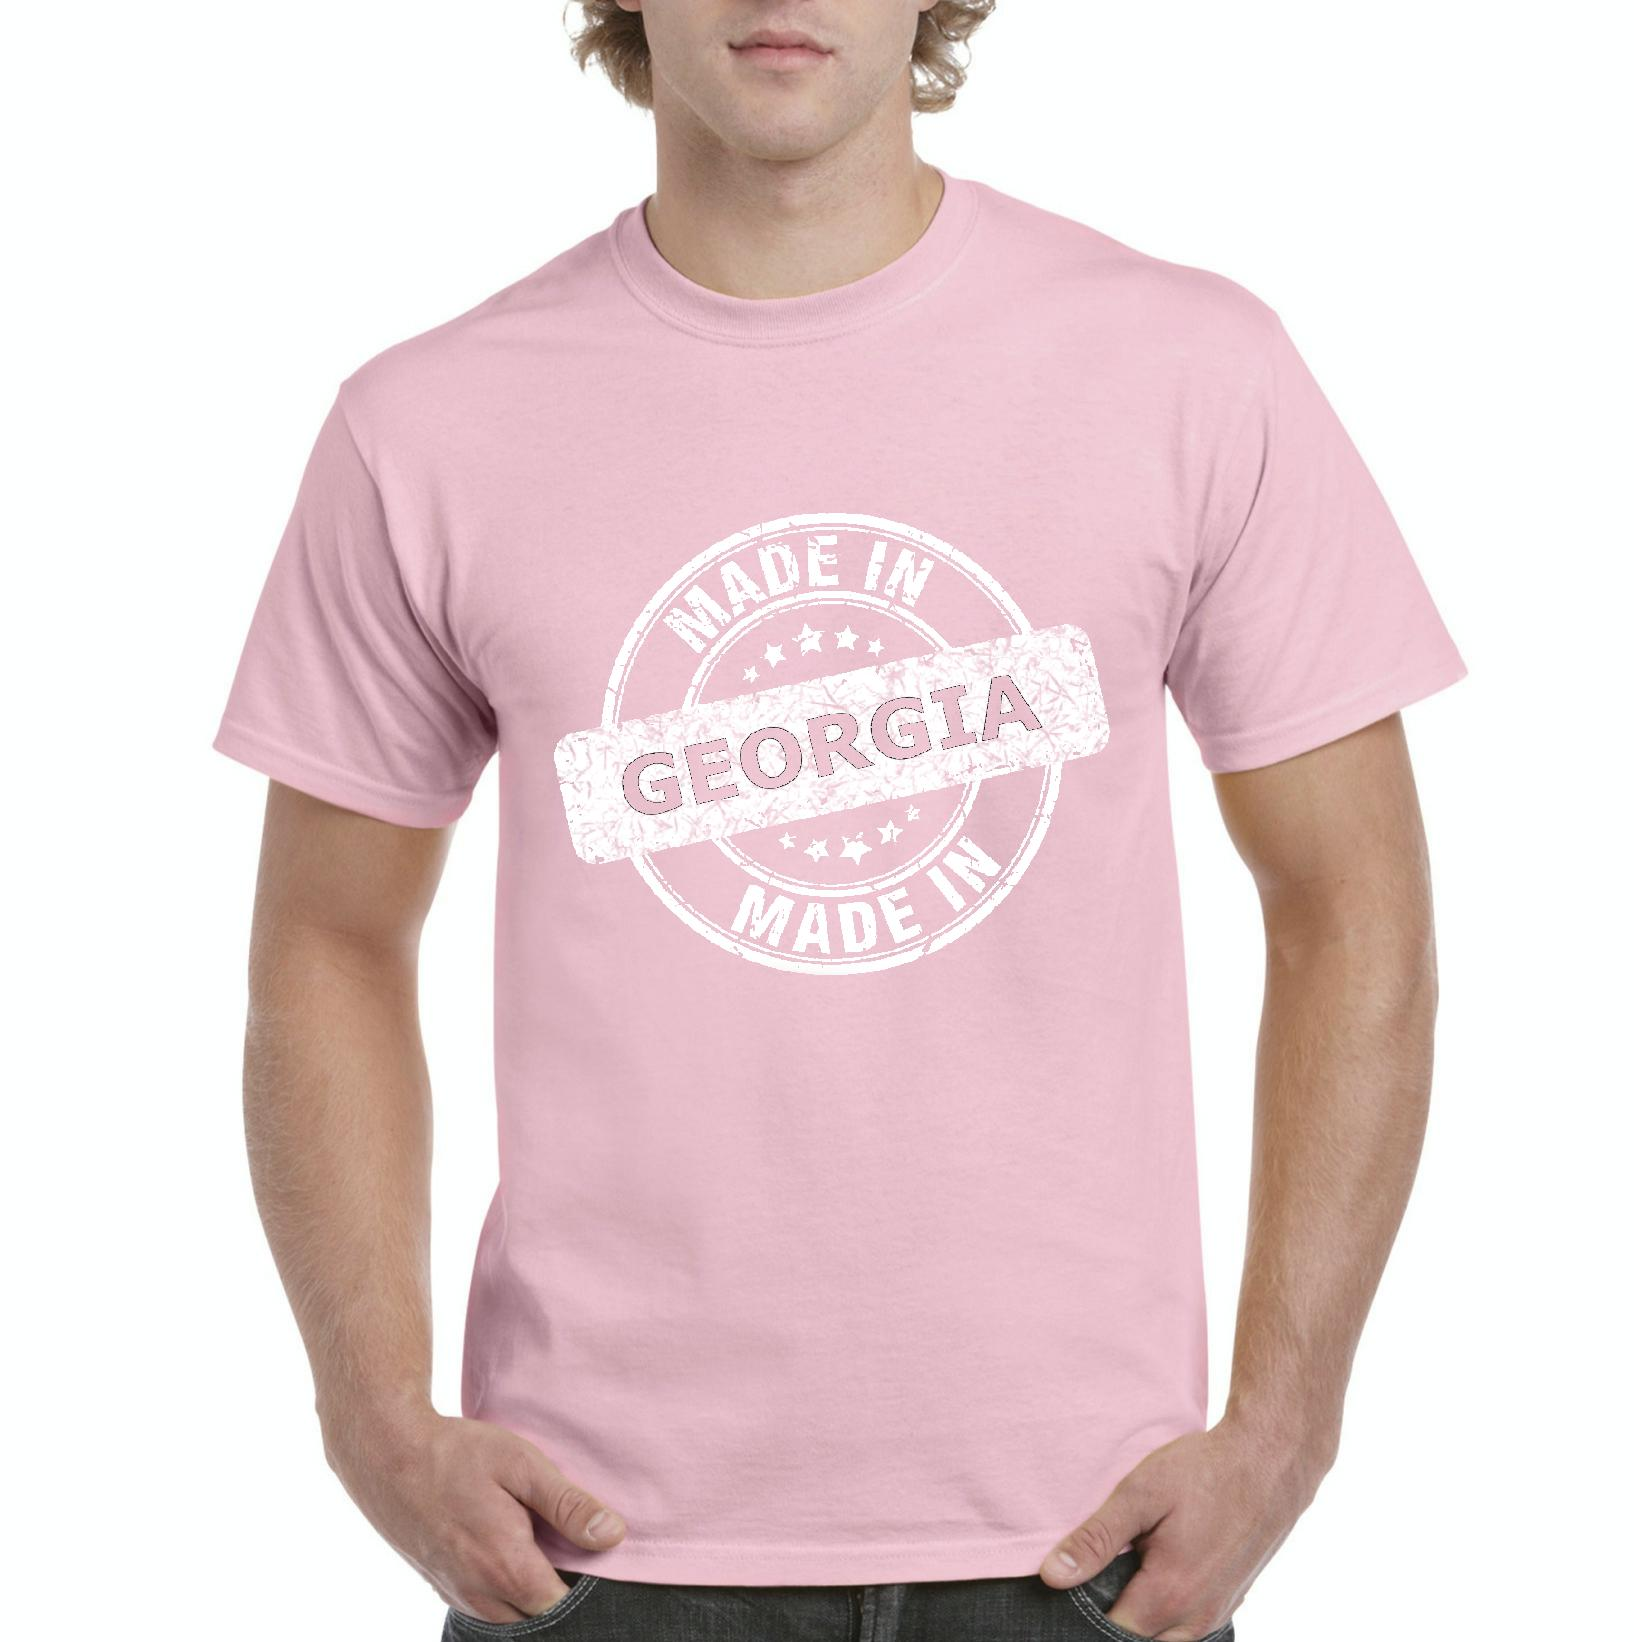 Made in GA Georgia Map Flag Atlanta Global Vity Home of University of Georgia UGA Mens Shirts